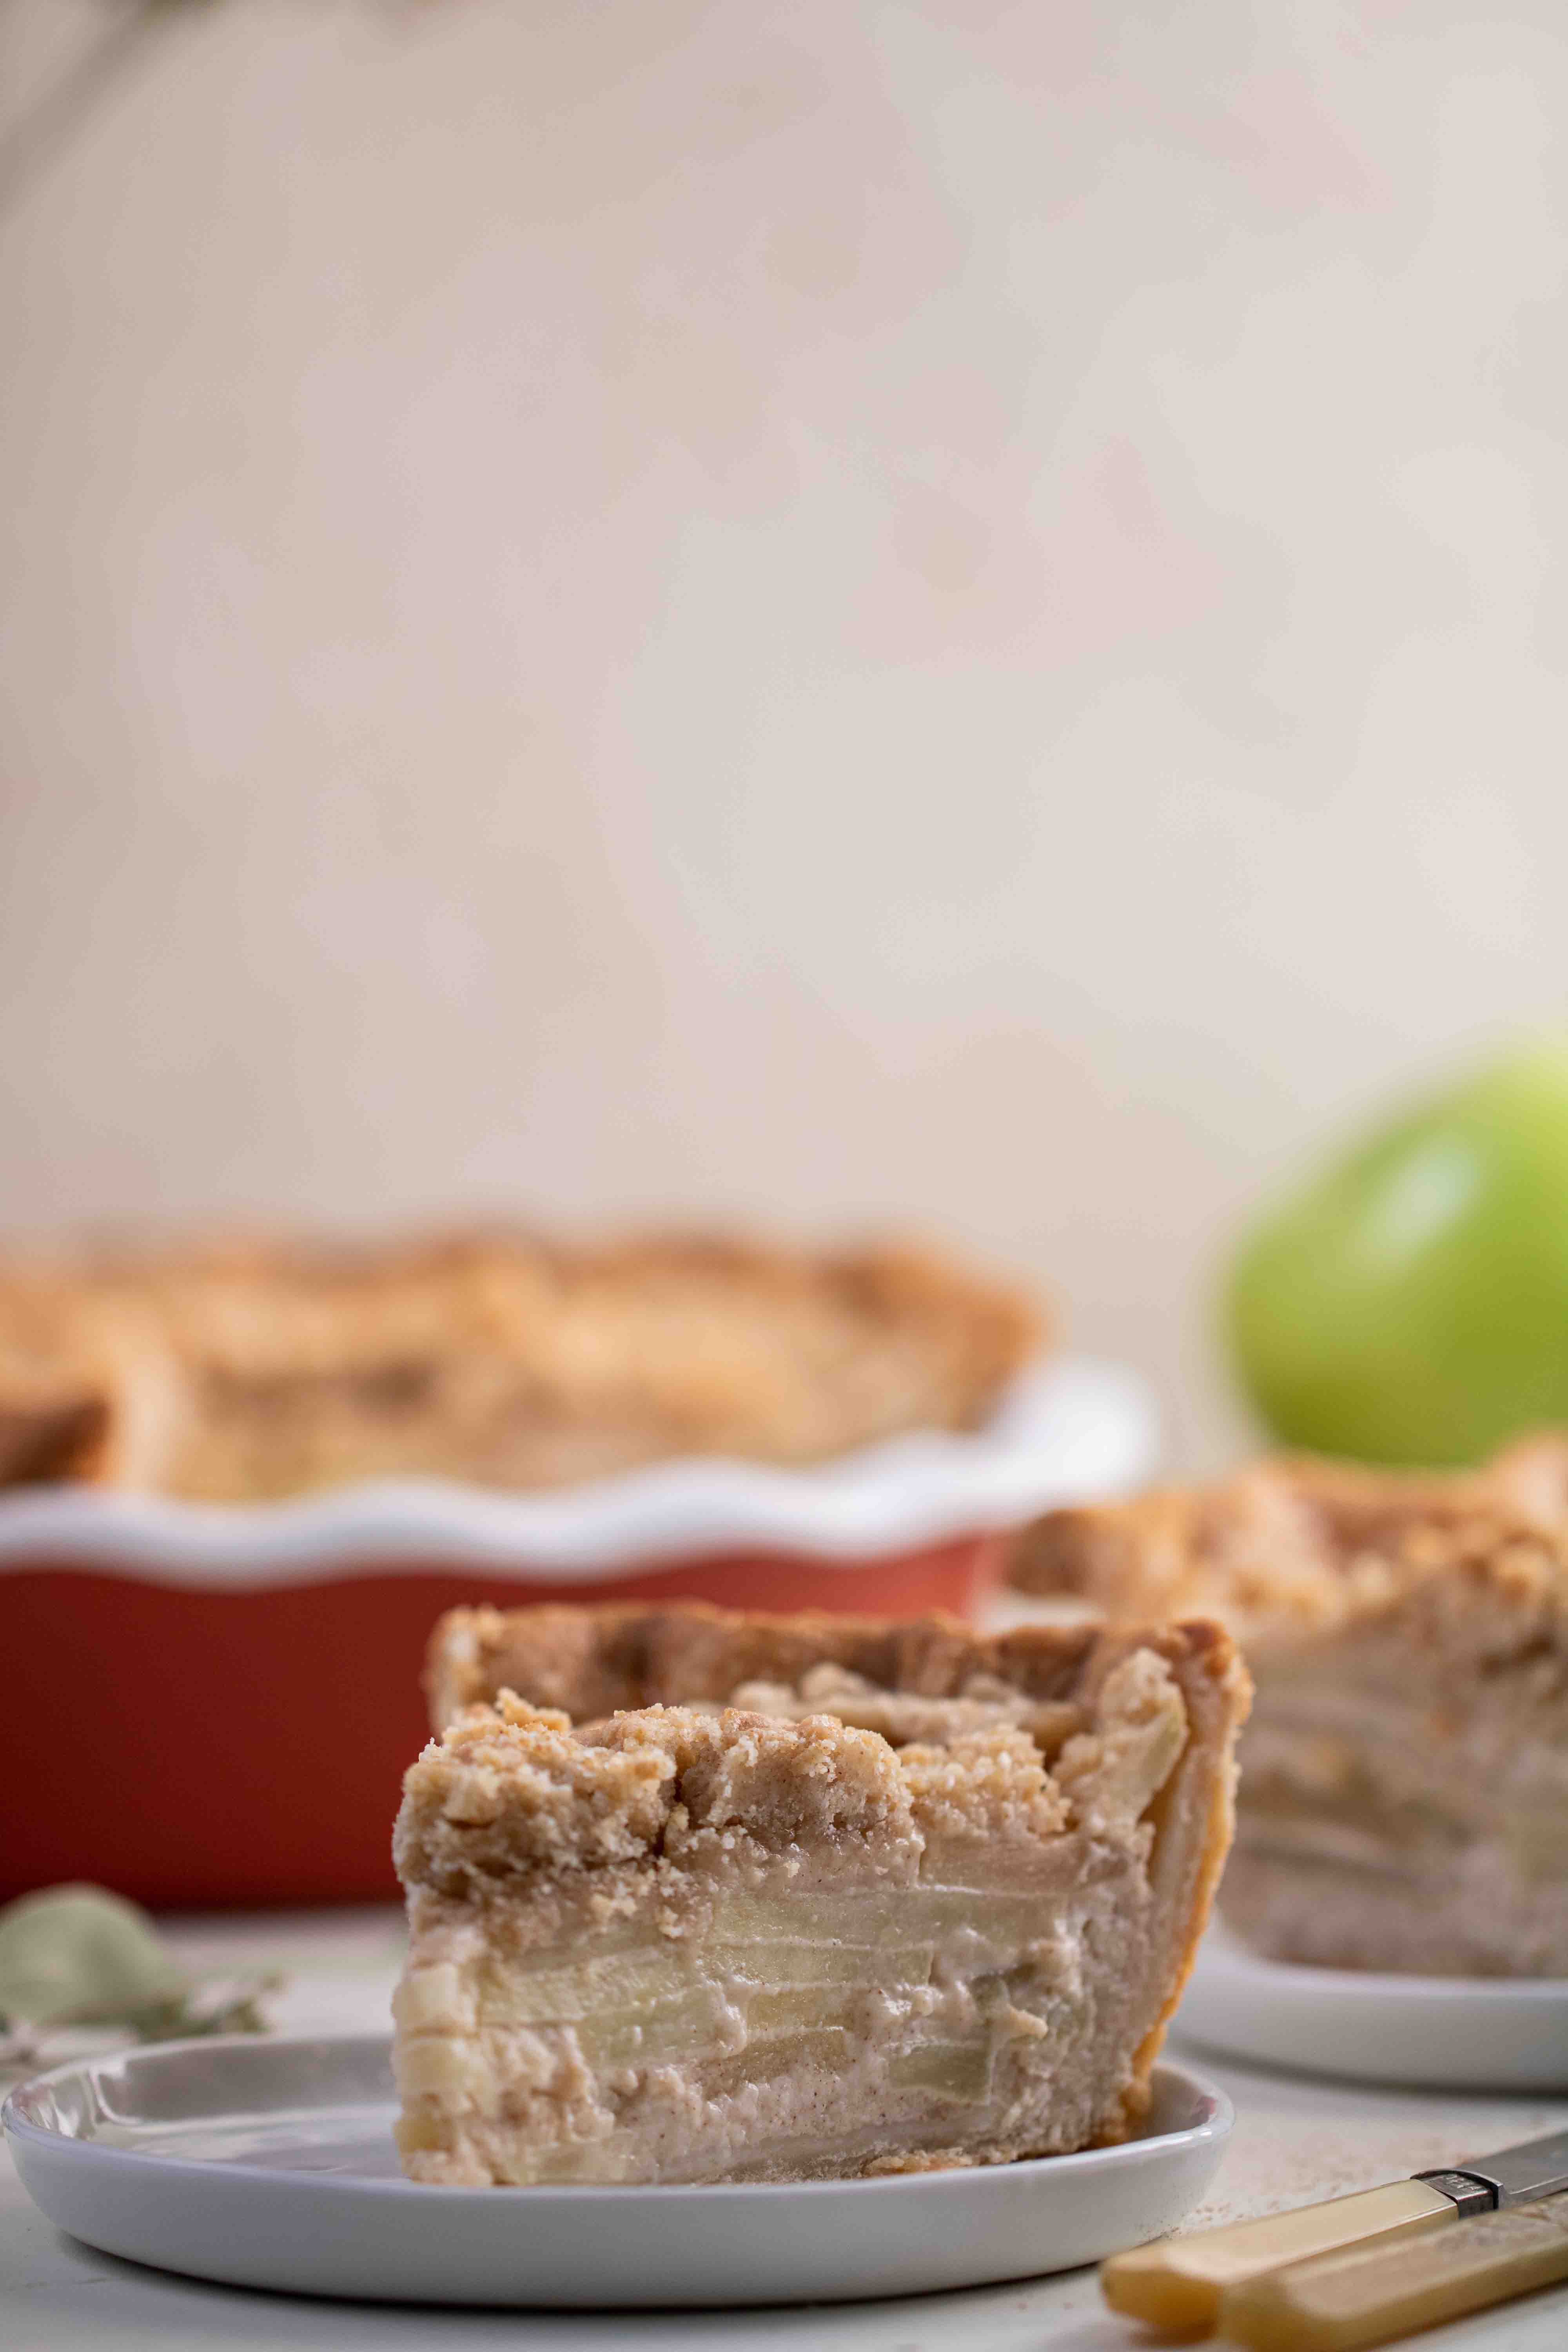 Straight on shot of apple pie showing the texture of each slice